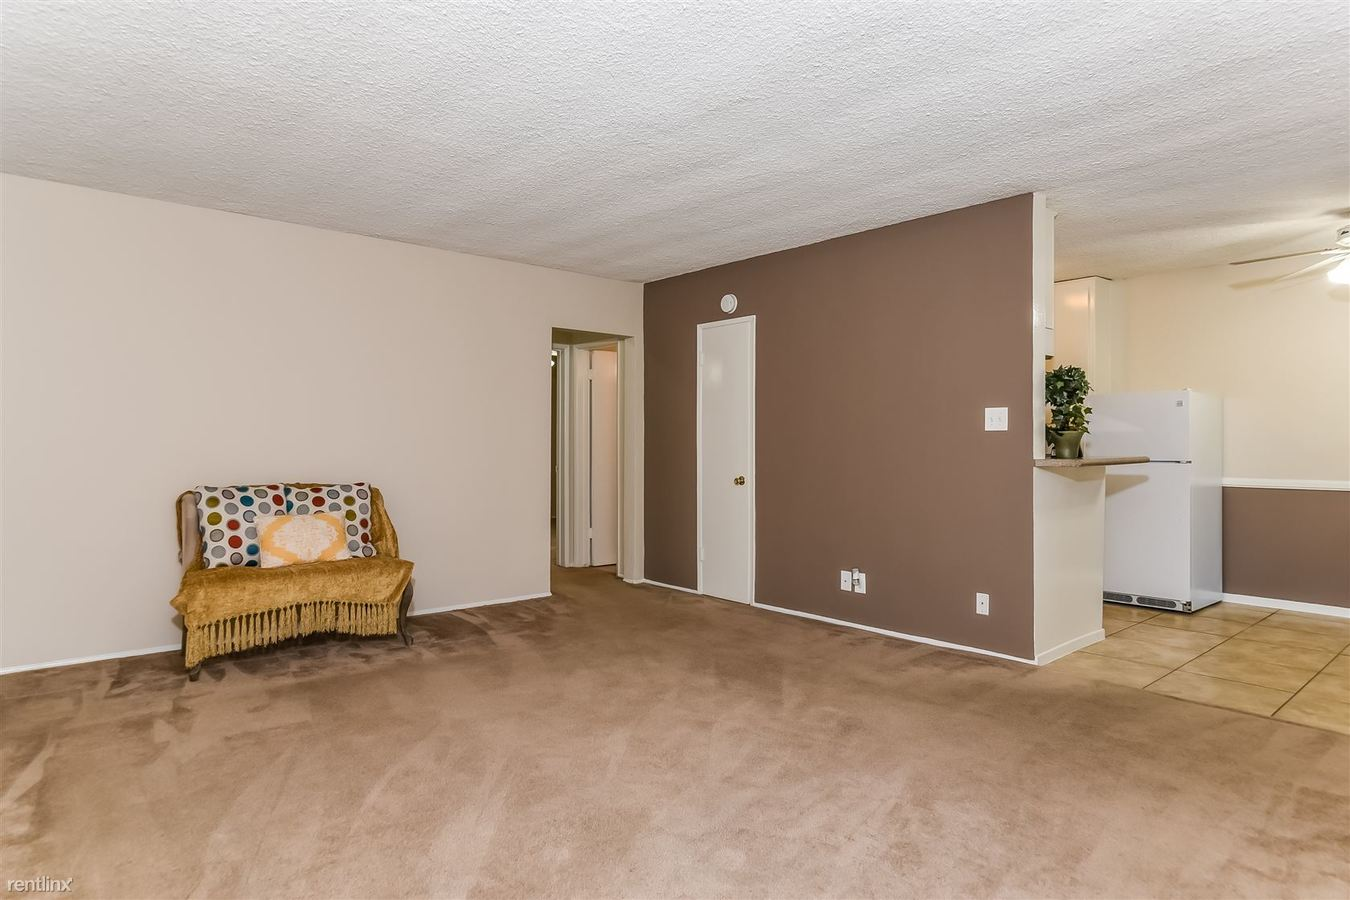 2 Bedrooms 1 Bathroom Apartment for rent at Pine Apartments in Sierra Madre, CA